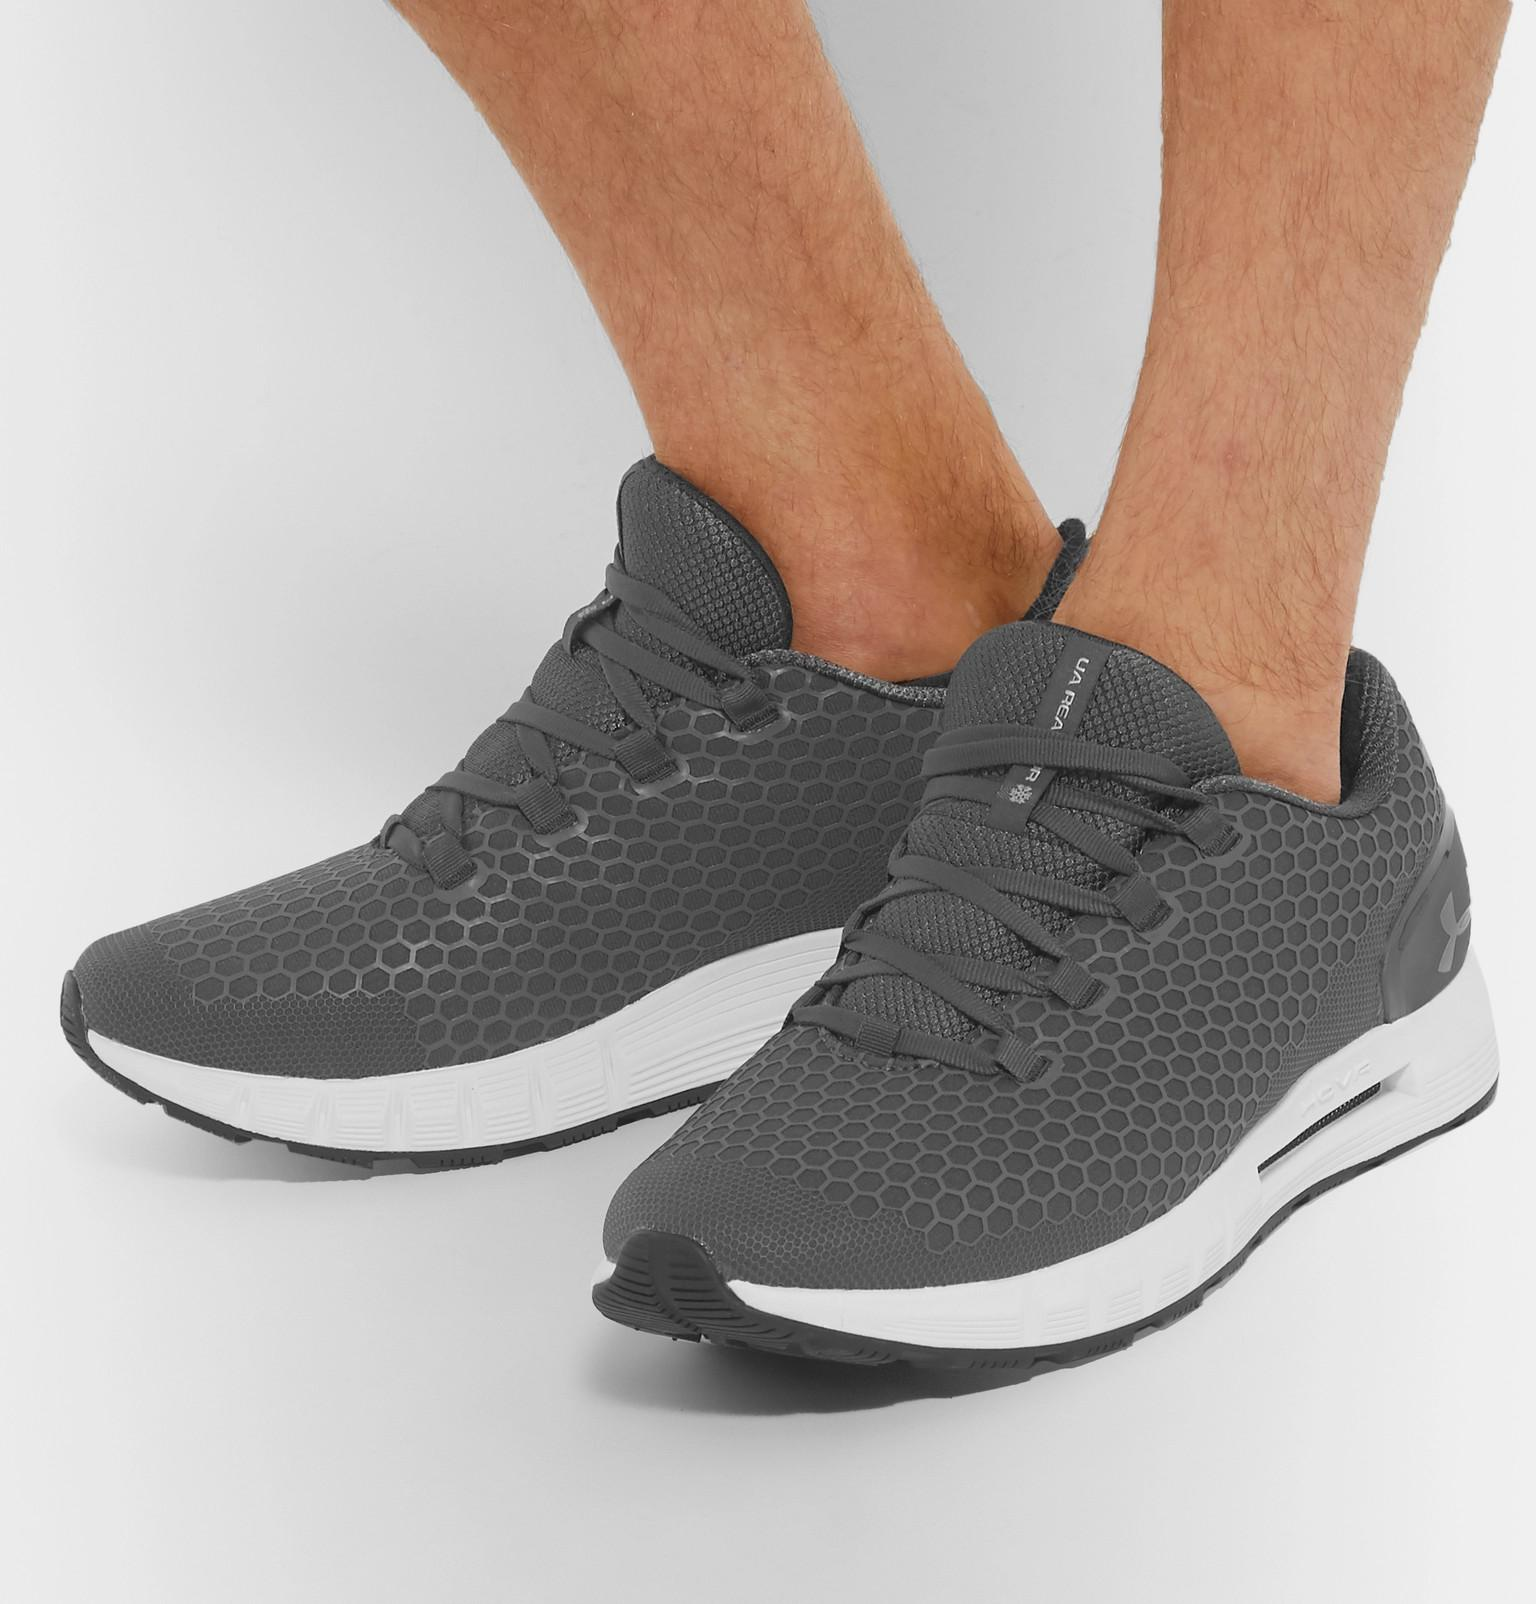 new style 6a94c 99d89 Under Armour Rubber Hovr Cg Reactor Nc Running Sneakers in ...